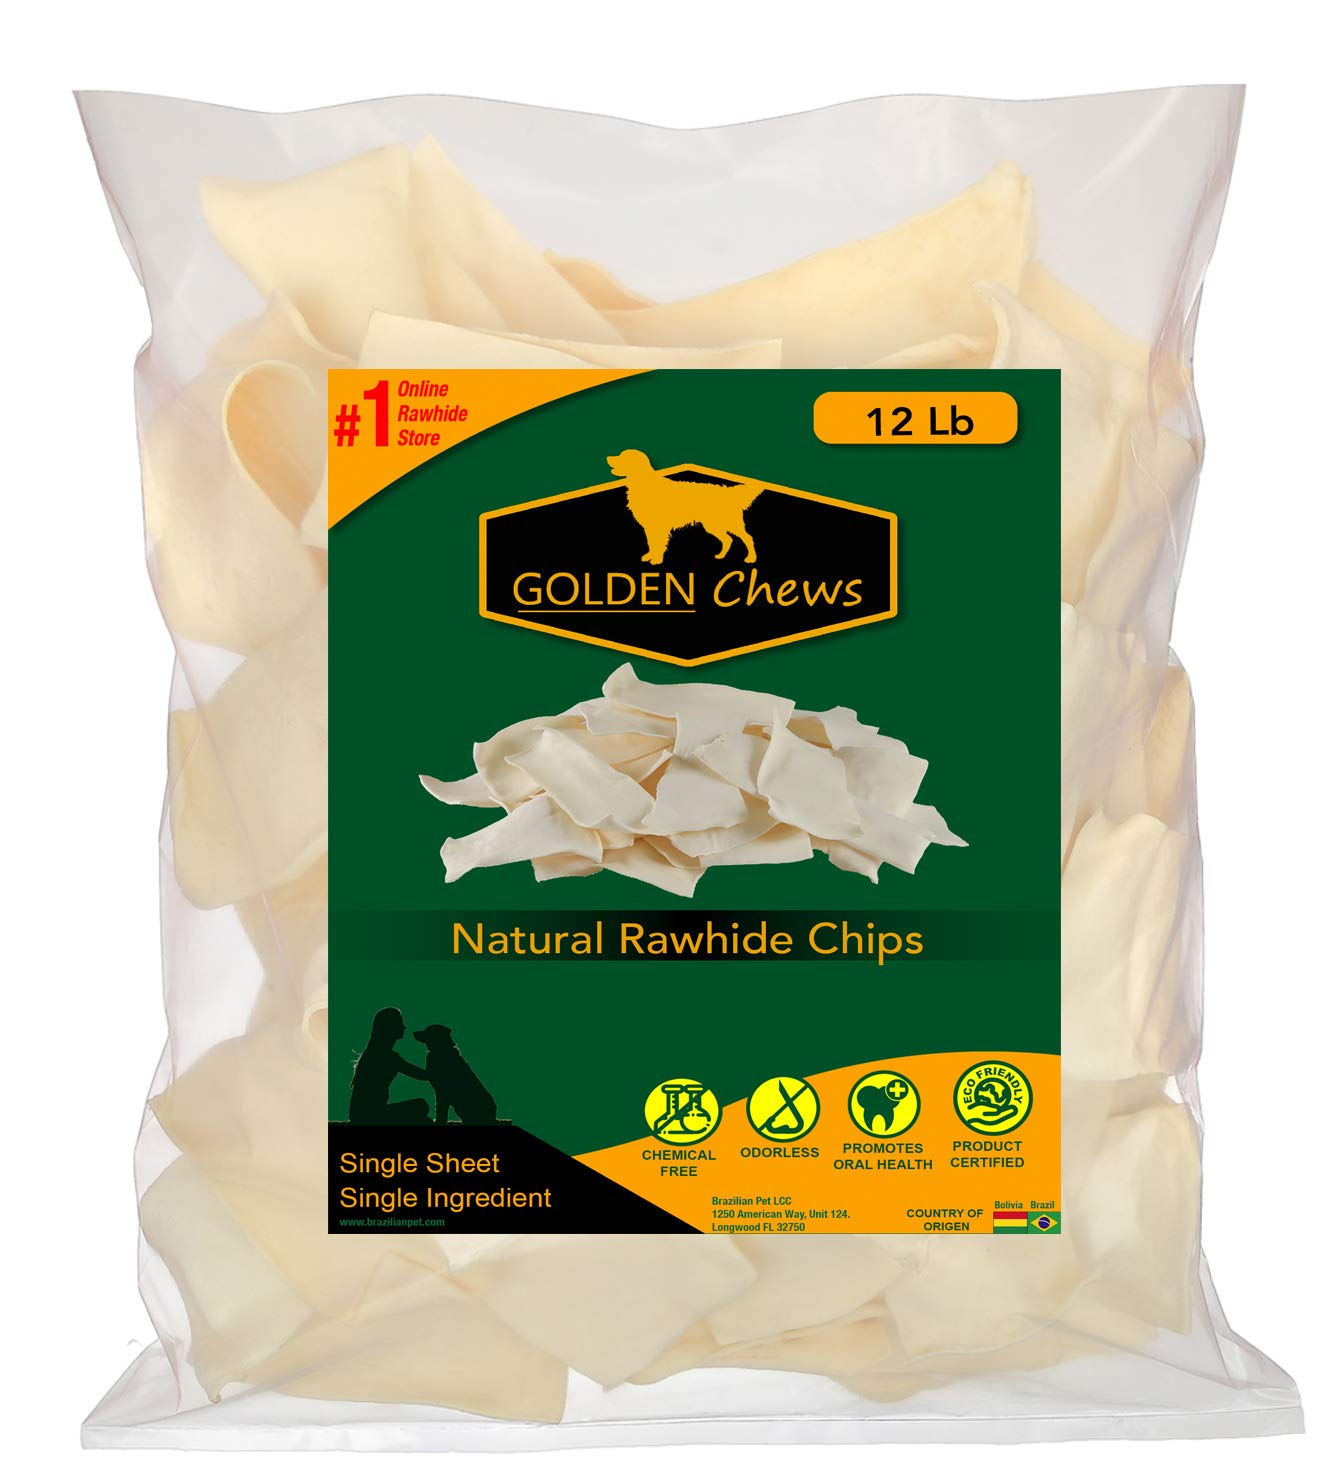 Golden Chews Natural Rawhide Chips - Premium Long-Lasting Dog Treats with Thick Cut Beef Hides (12 Pounds) by Golden Chews